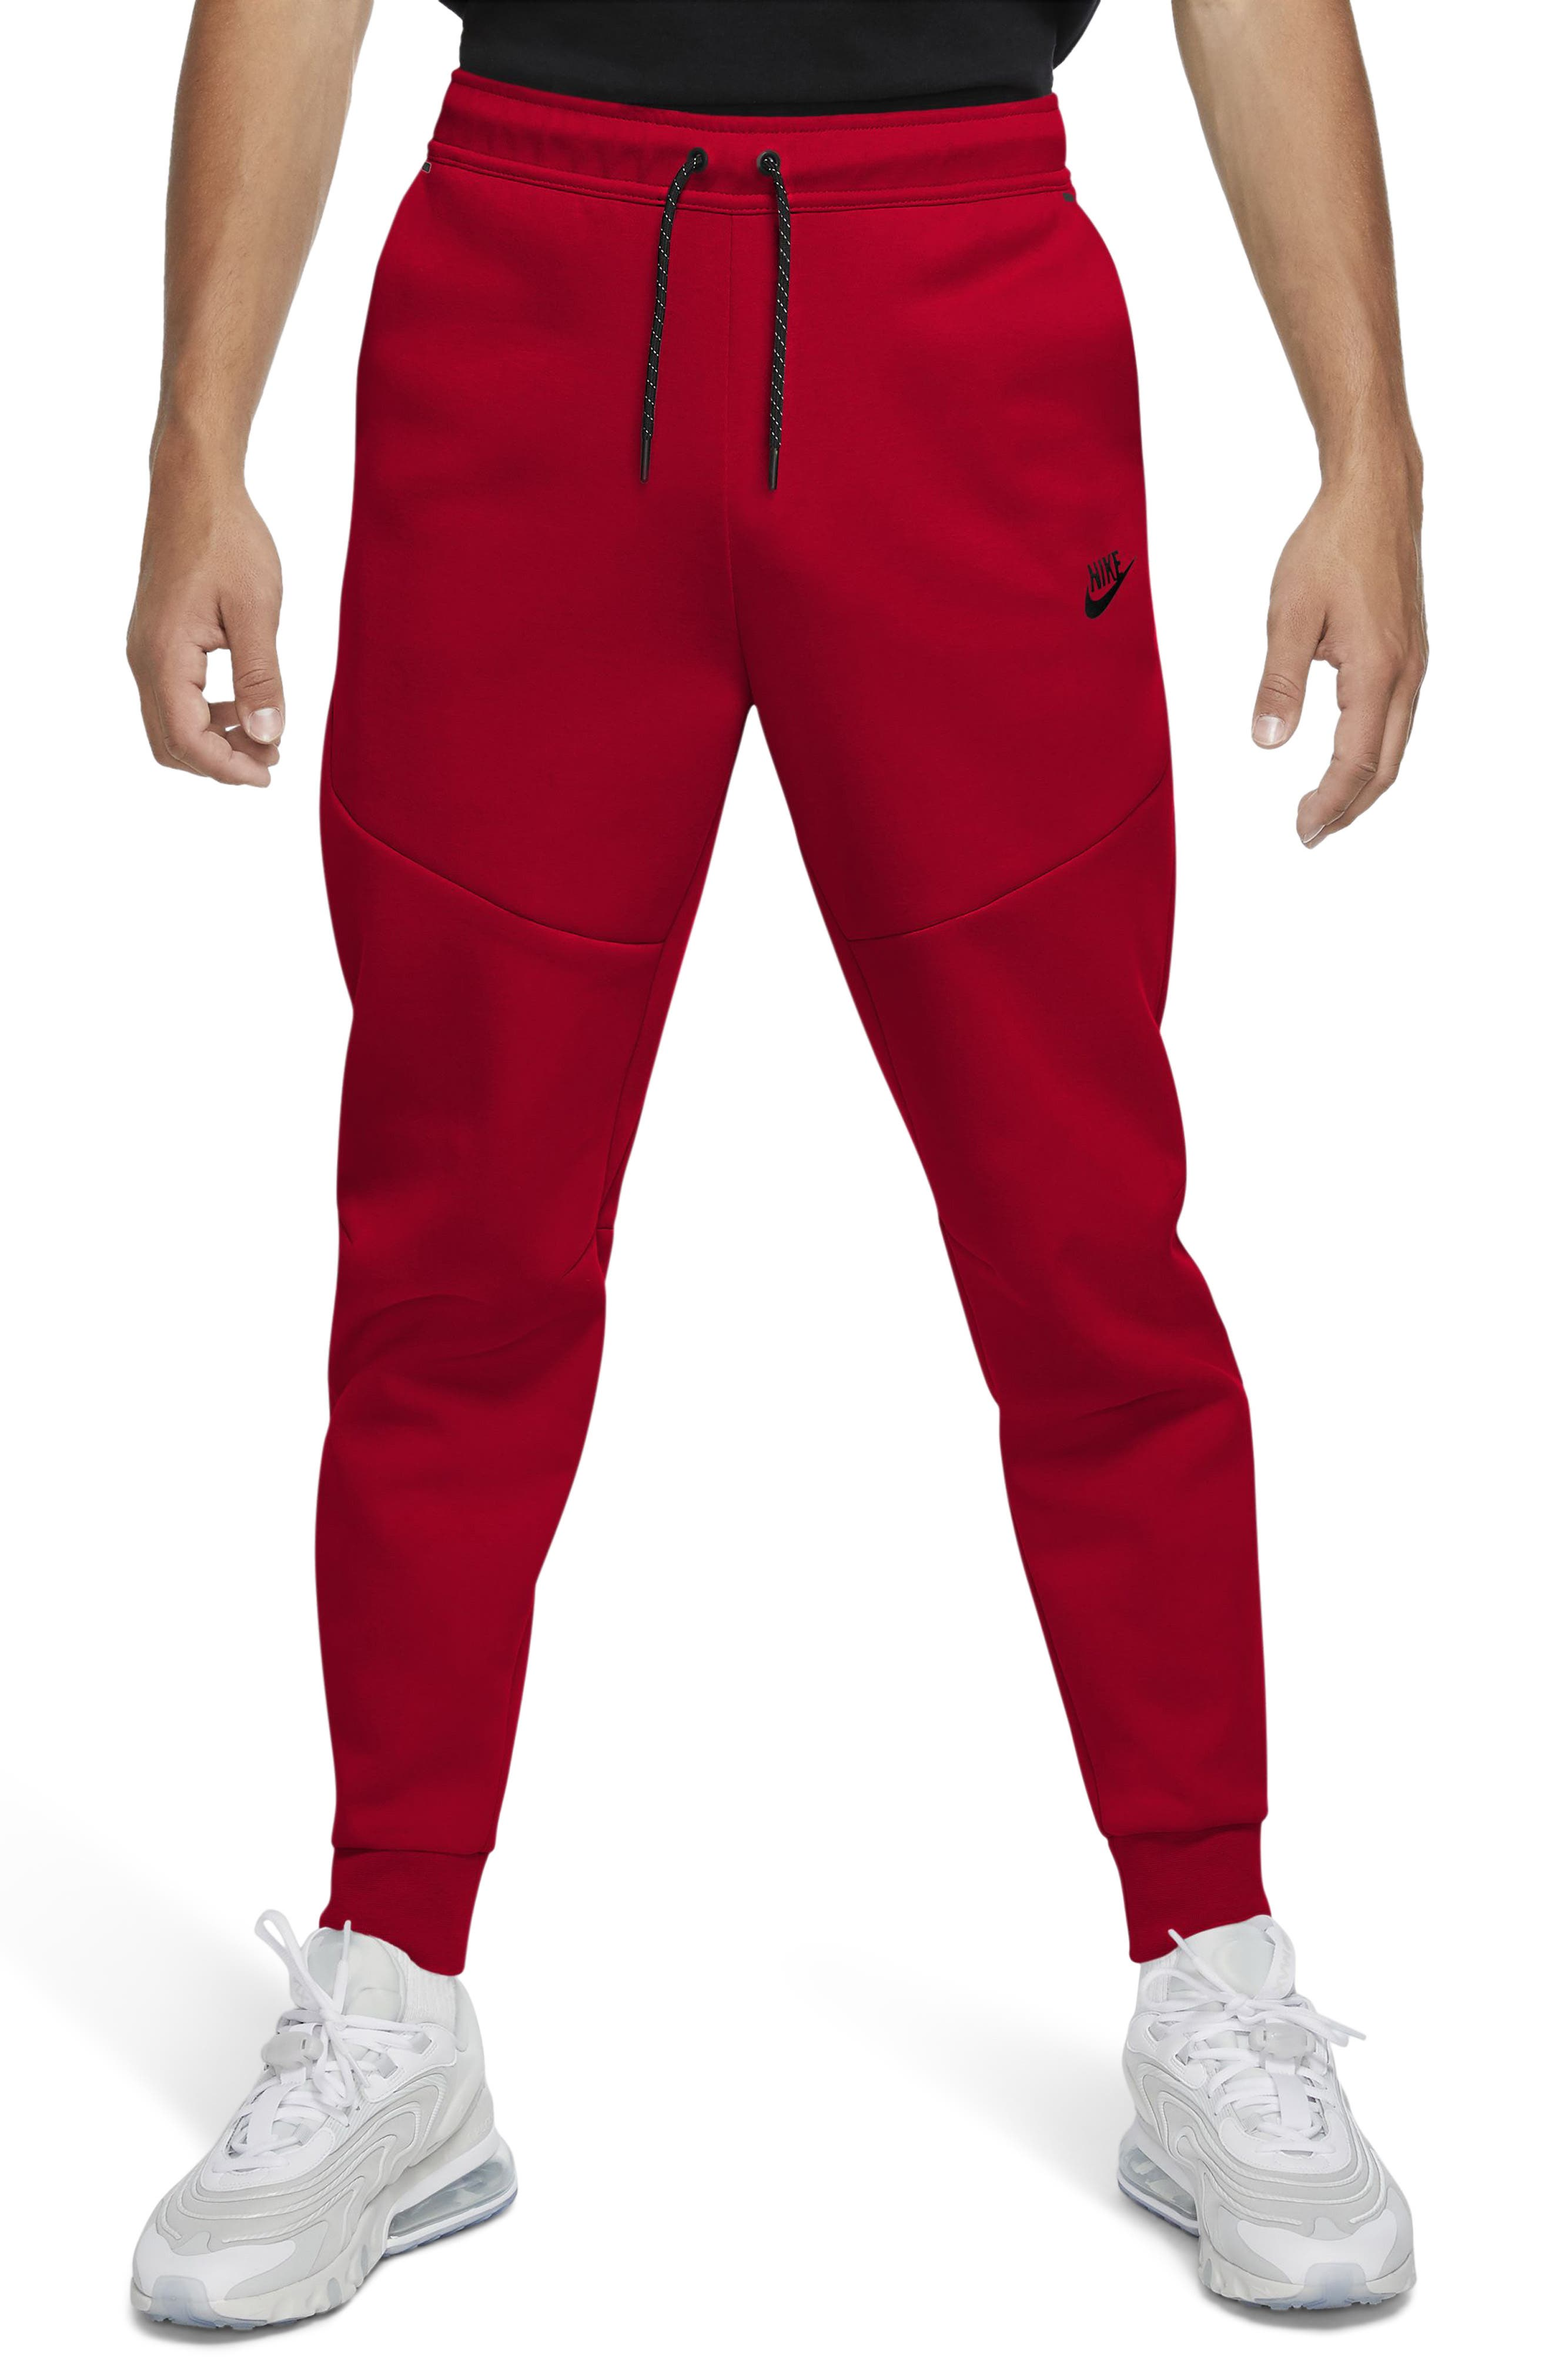 Nike Tech Fleece spacer knit retains heat without added bulk in jogger-style sweatpants that are relaxed through the thigh and taper below the knee. A zippered side pocket provides secure space for stowing small essentials. Style Name: Nike Men\\\'S Tech Fleece Jogger Sweatpants. Style Number: 6000465. Available in stores.